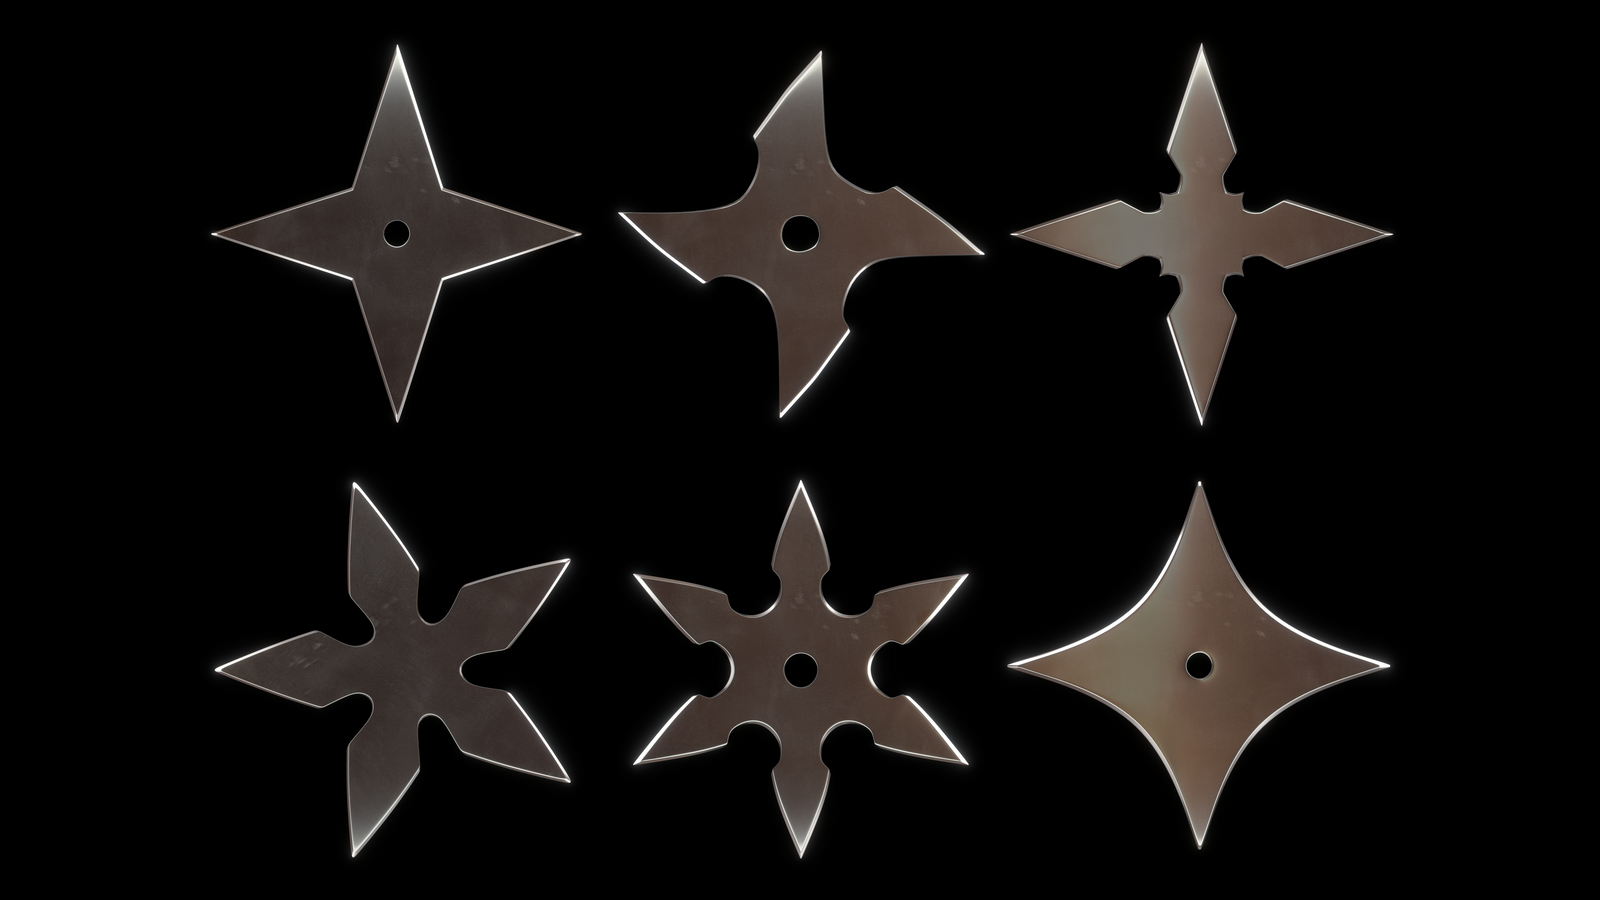 Shuriken by JoaoYates